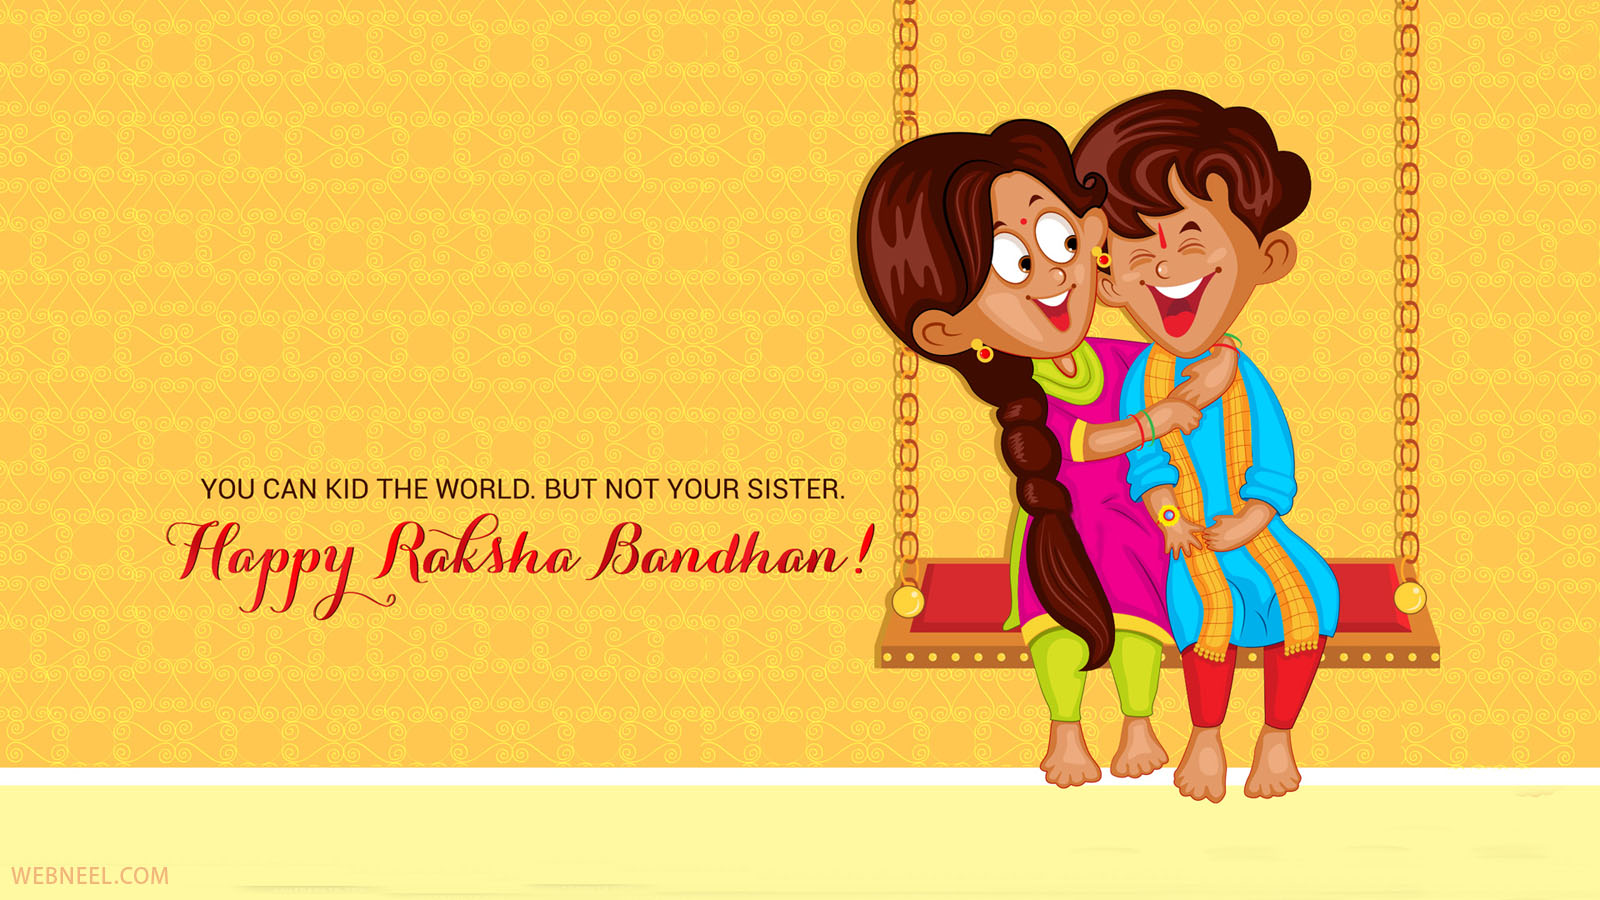 HD – Raksha Bandhan Wallpapers & desktop Images